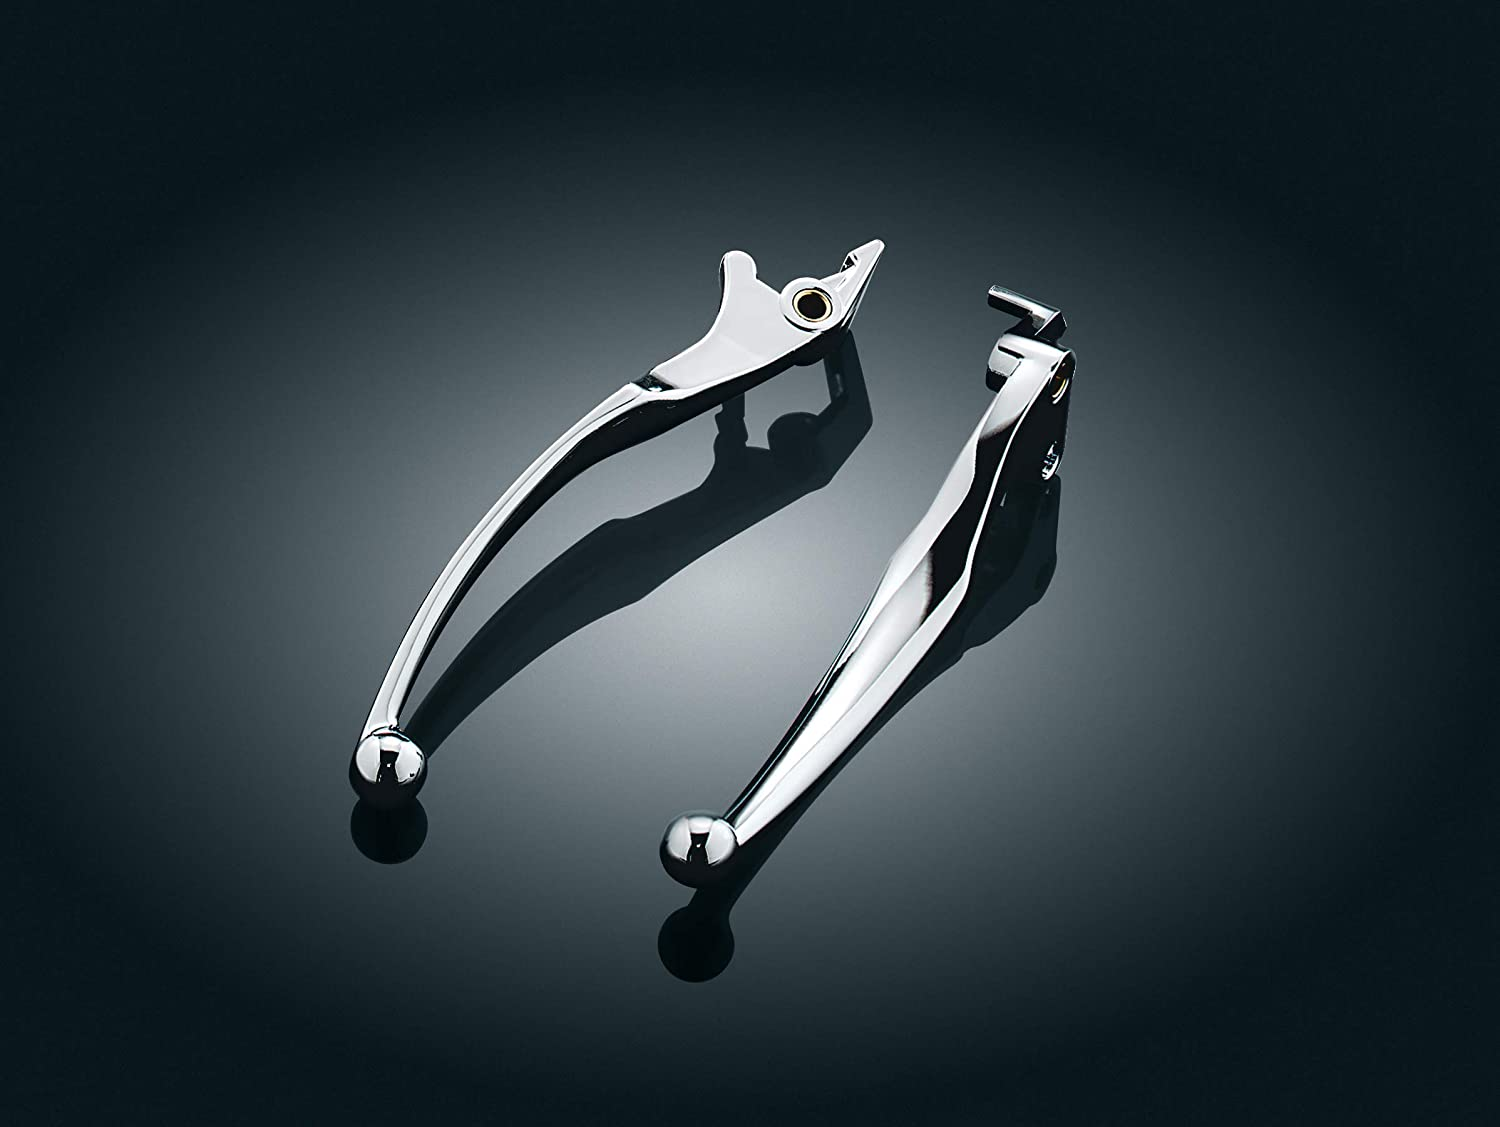 Kuryakyn 7429 Wide Style Levers for Honda Metric Cruiser with Hydraulic Clutches